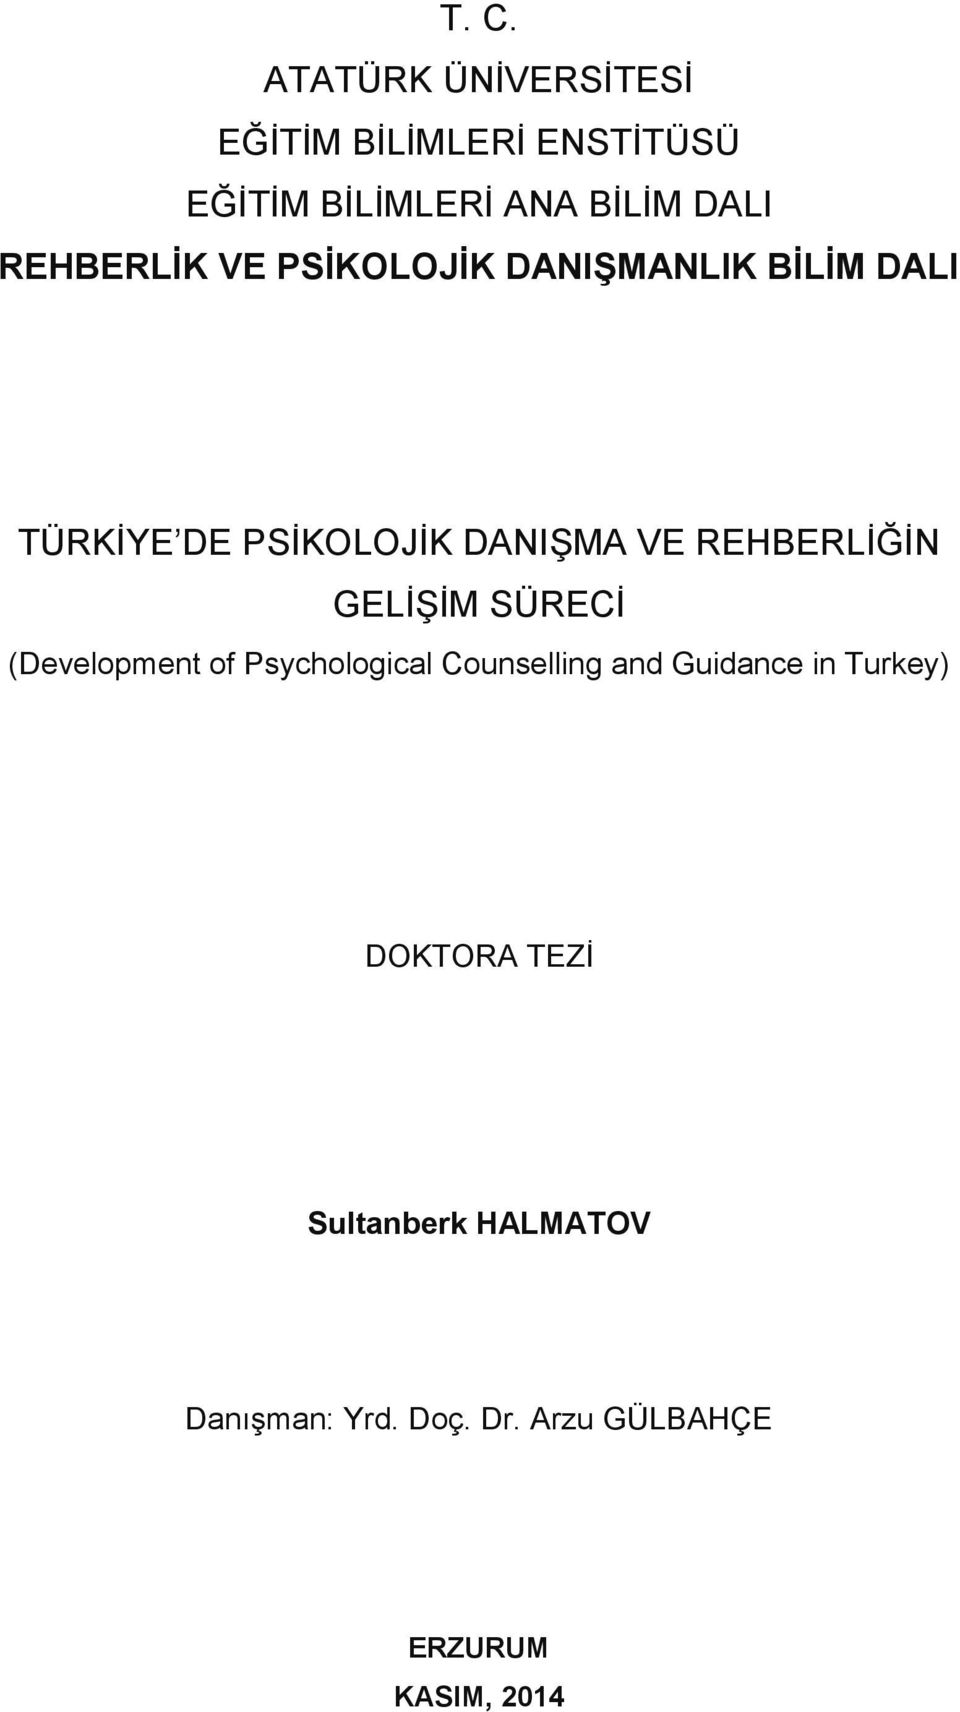 REHBERLİĞİN GELİŞİM SÜRECİ (Development of Psychological Counselling and Guidance in